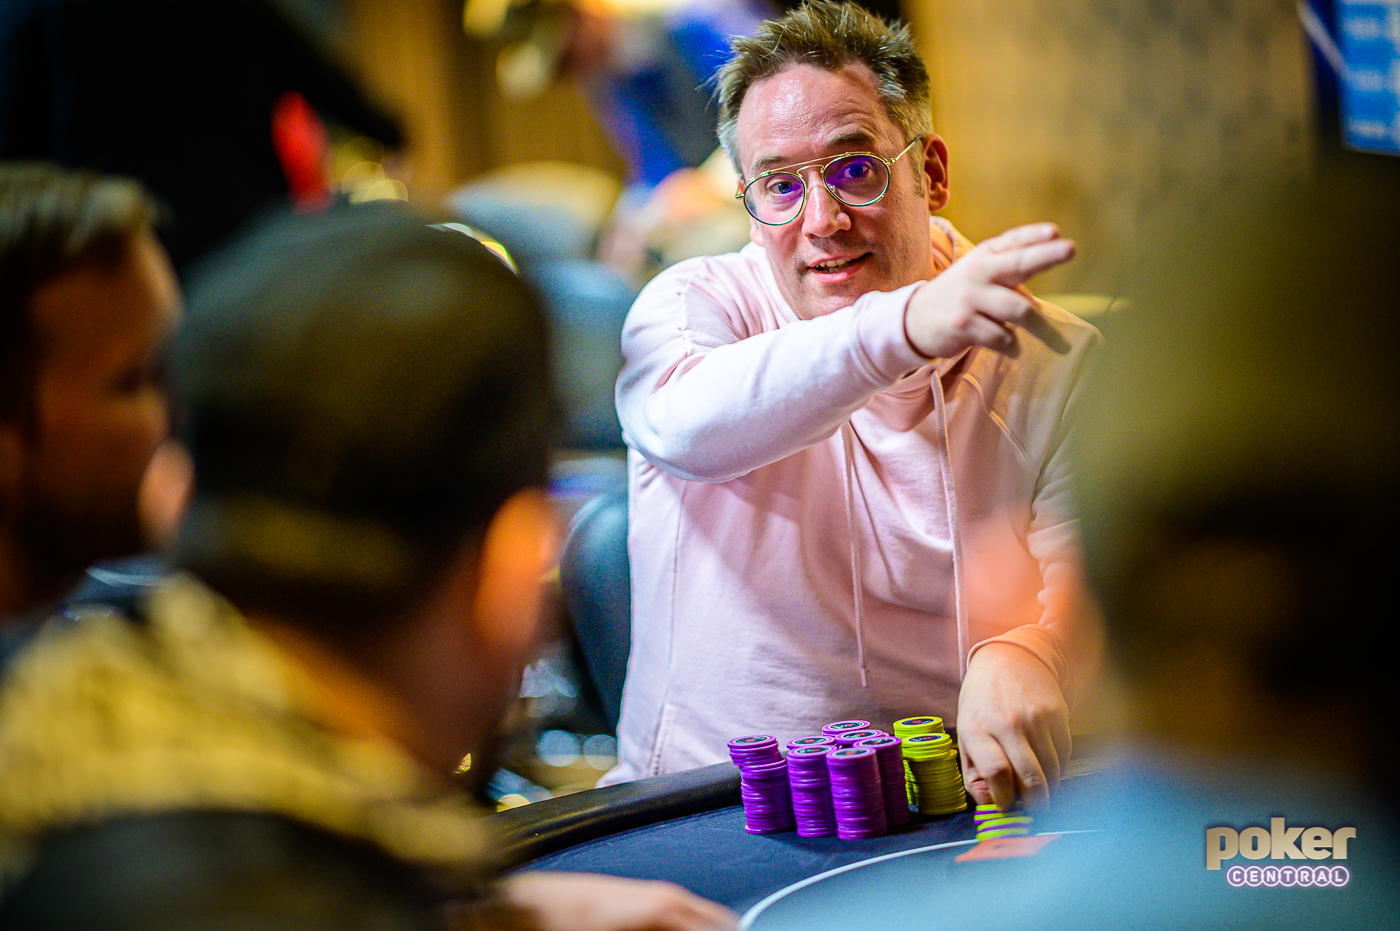 Sam Grafton shares the chip lead with Luc Greenwood heading into the final table of Event #1 of the British Poker Open.